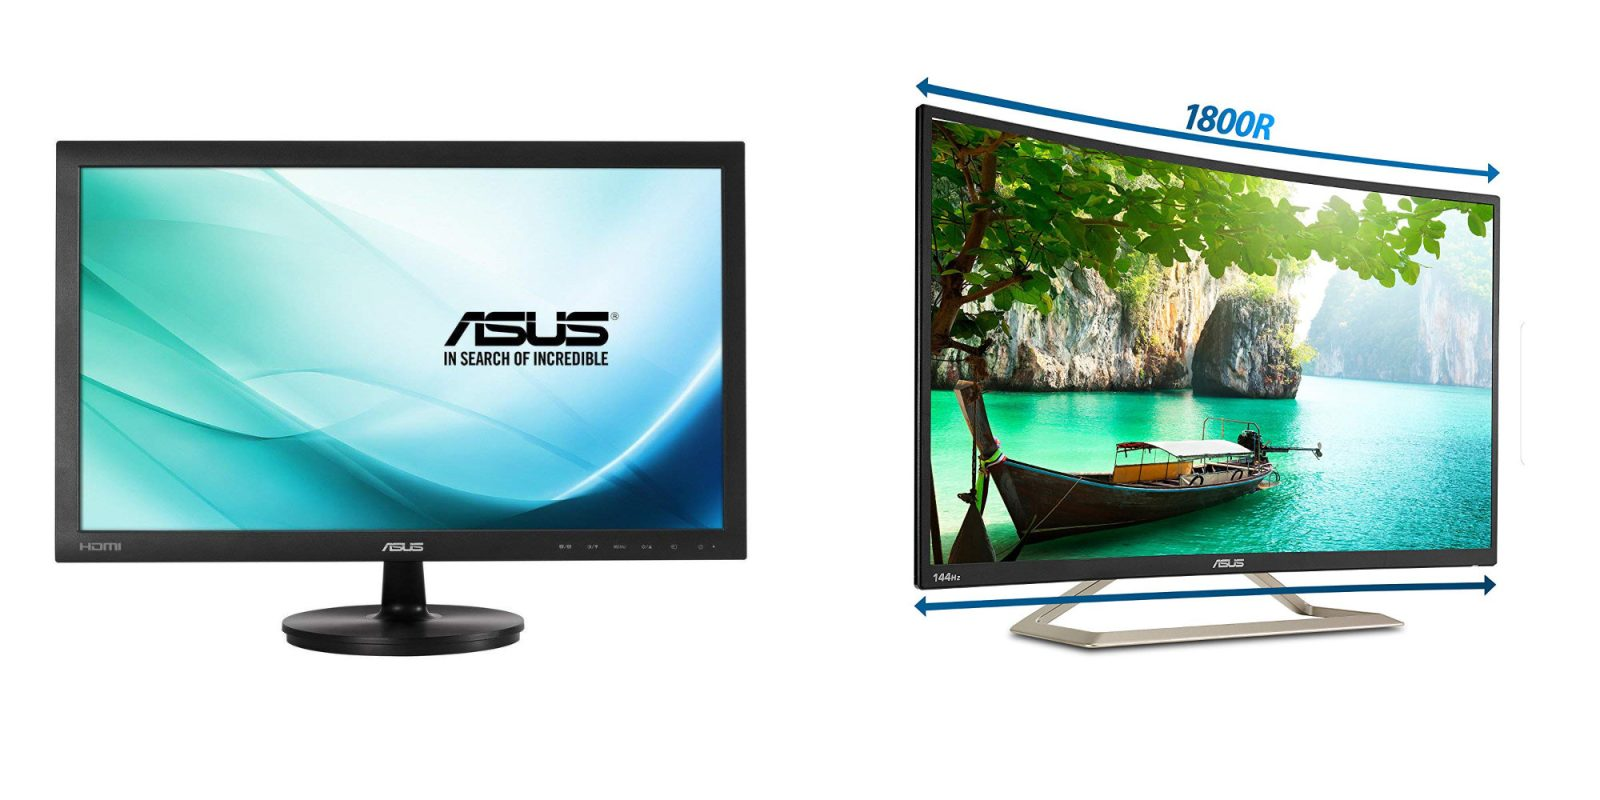 ASUS' 23.6-inch Full HD Monitor is down to $110 shipped (2019 low), 31.5-inch Curved: $260